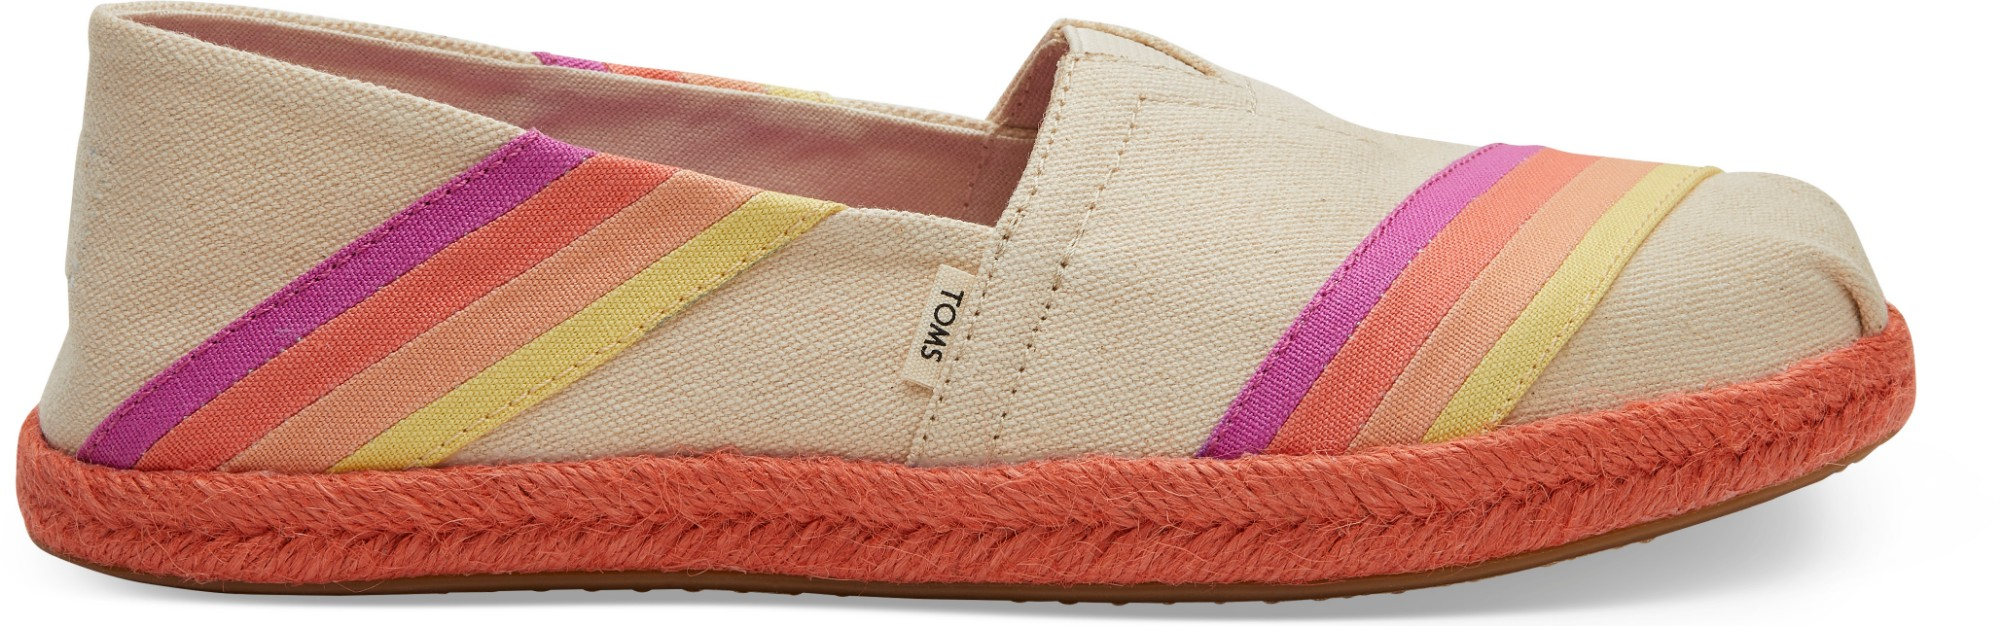 TOMS Canvas Multi Color Sunset Women's Alpargata Natural 37,5